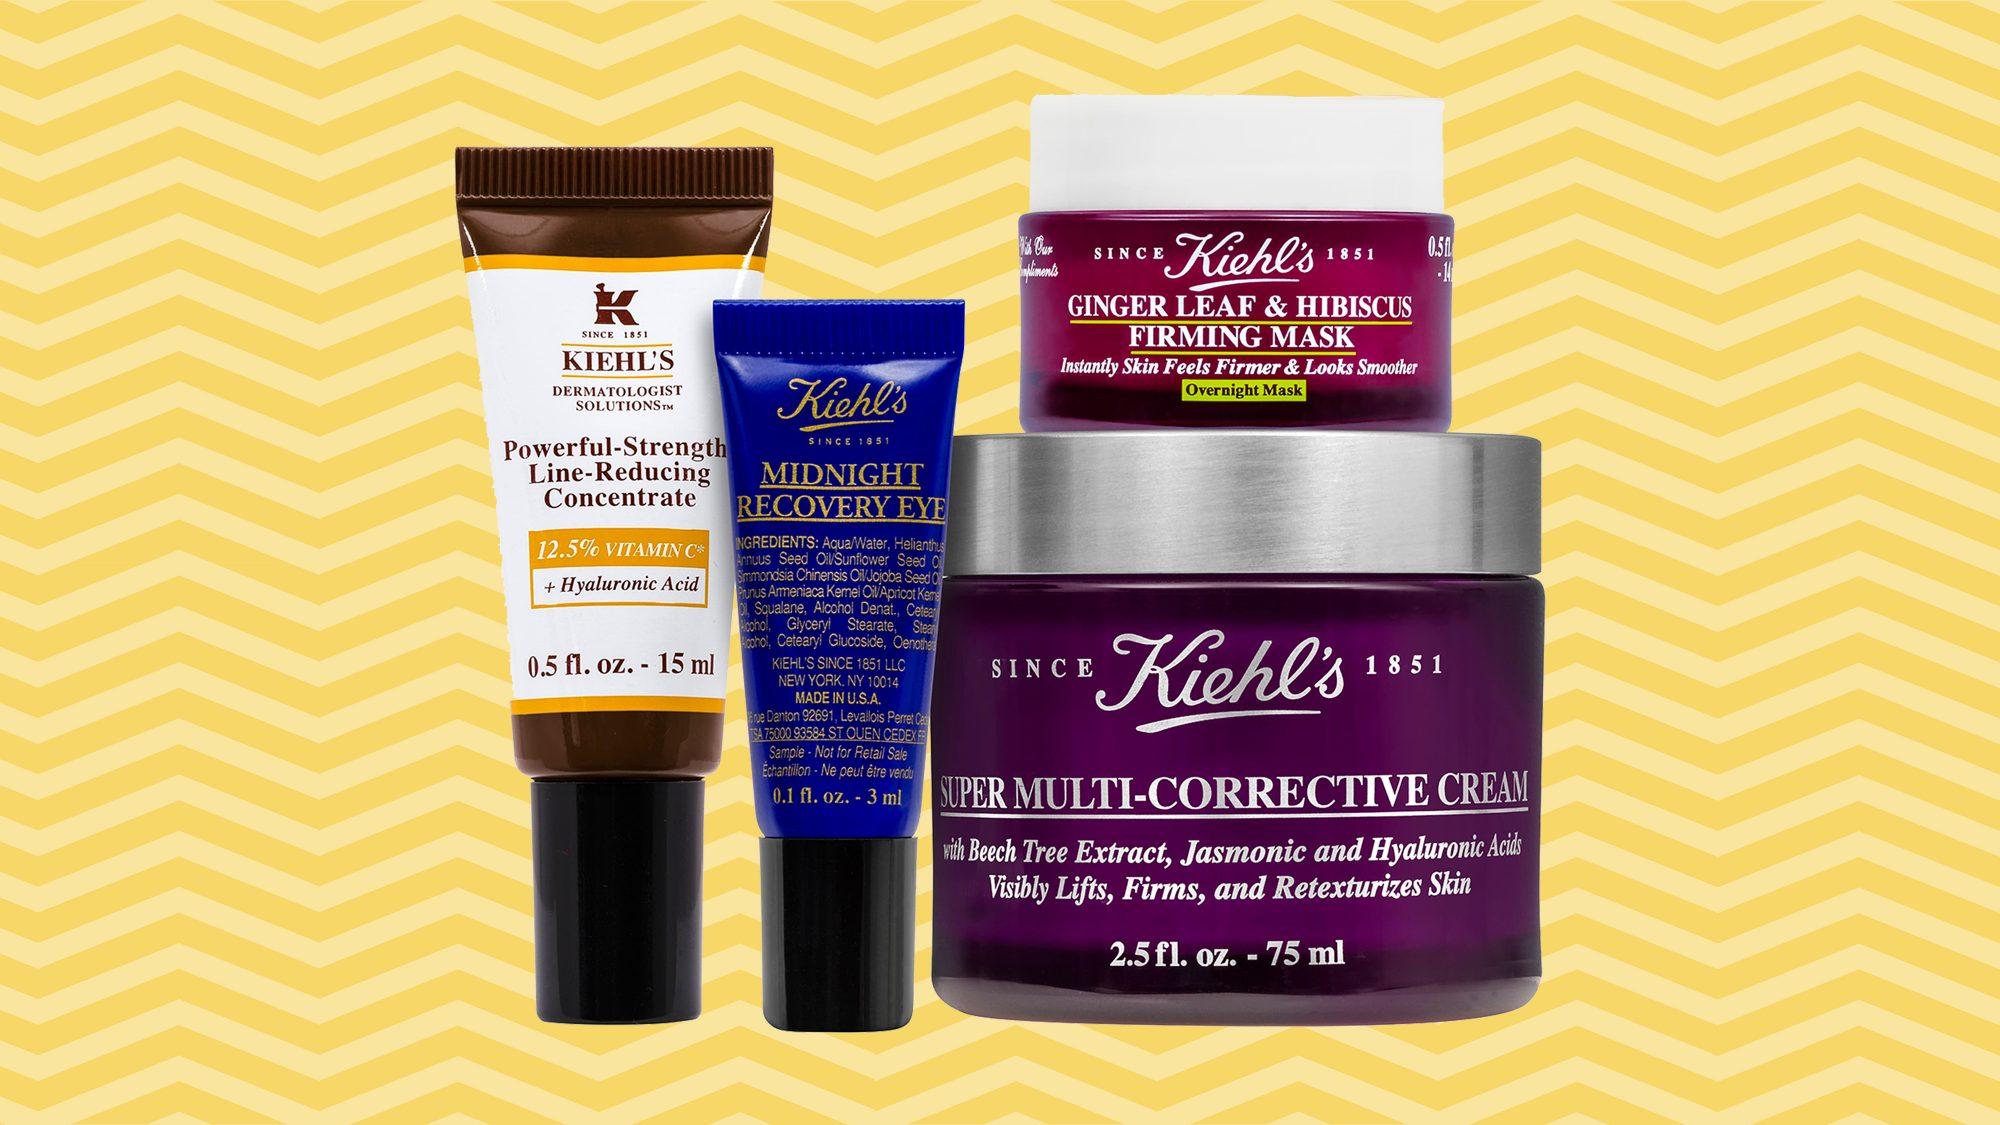 Kiehl's Since 1851 Powerful-Strength Youth Essentials Set Tout